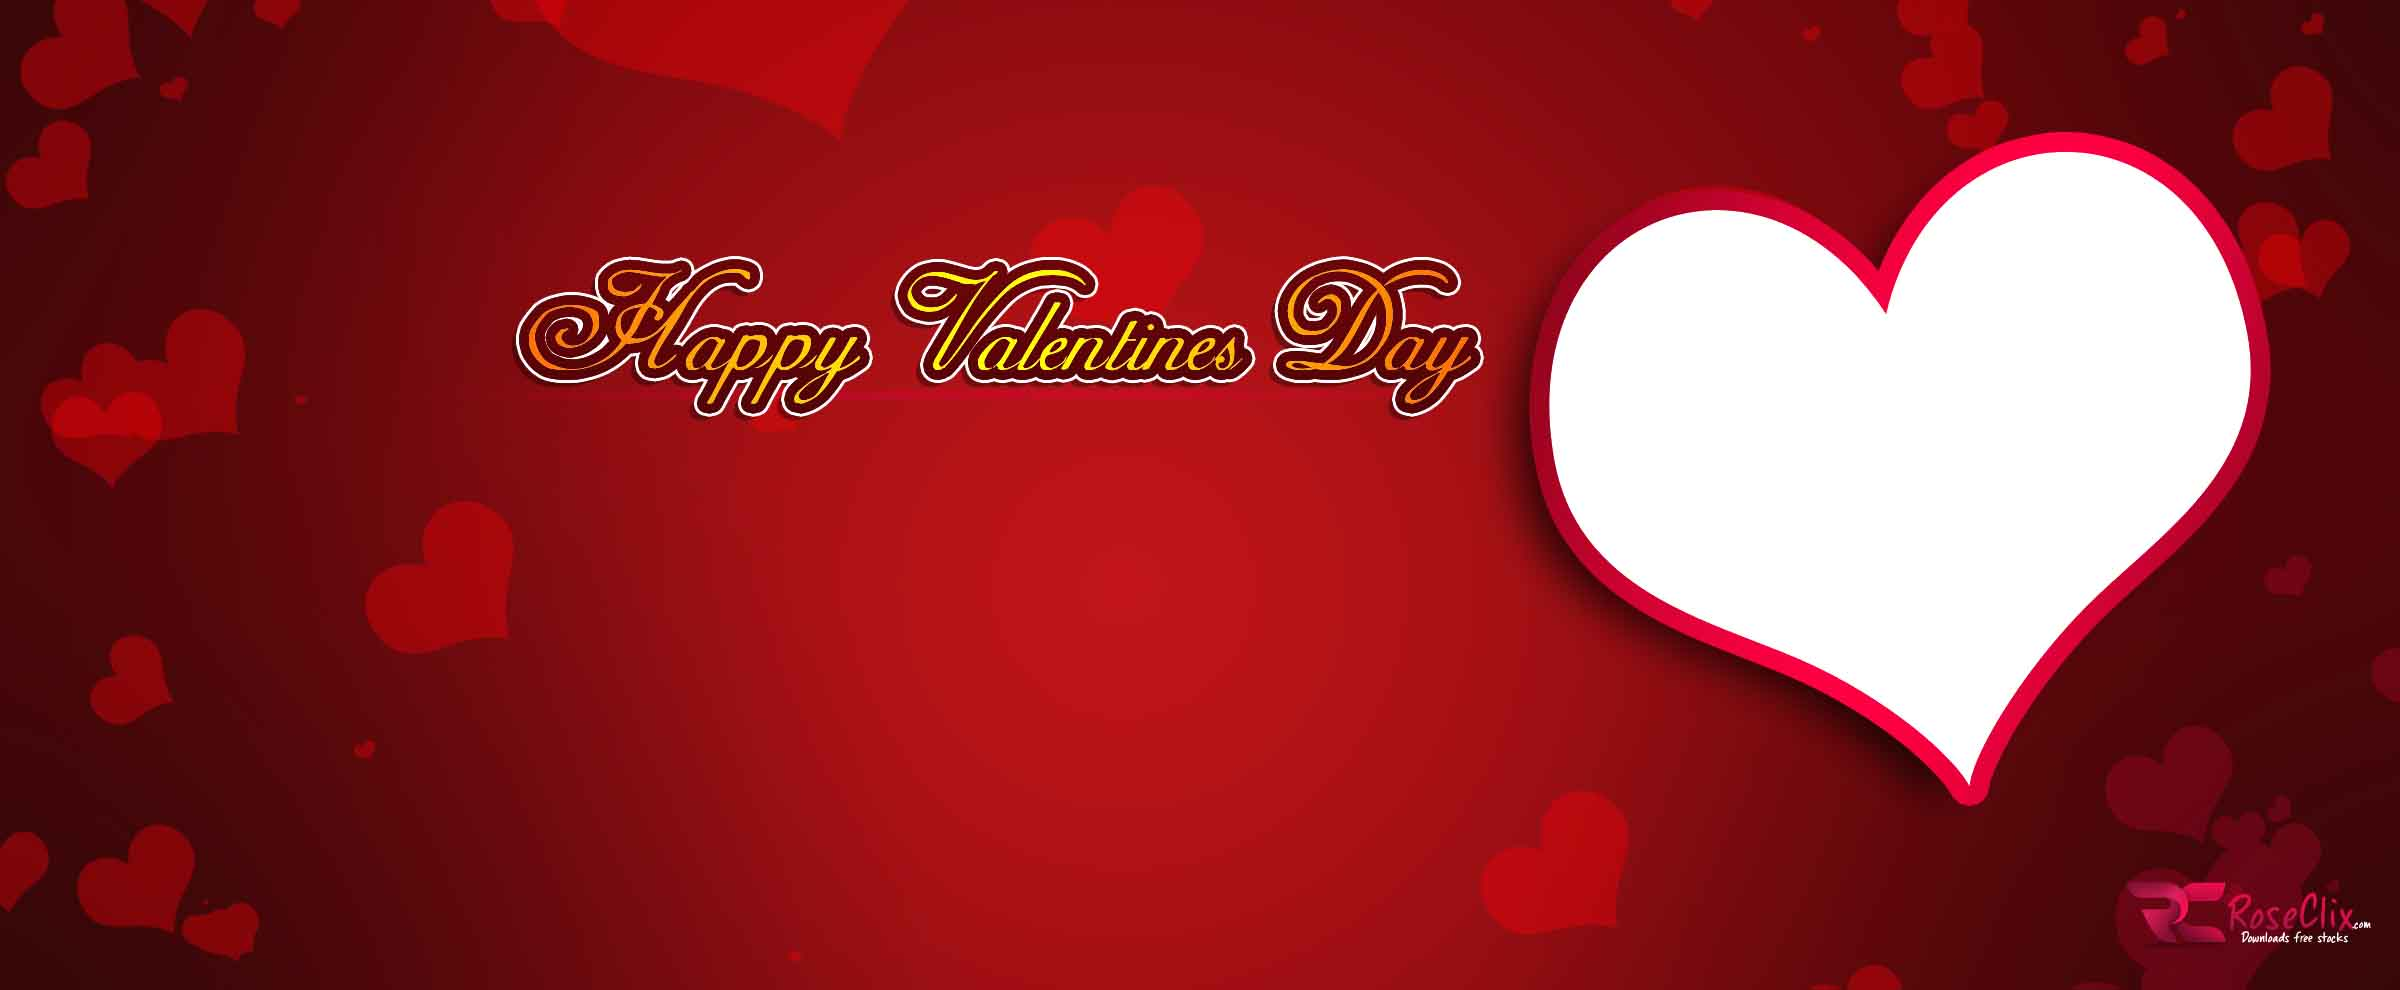 free valentine s day newsletter templates easystore blog day newsletter templates easystore